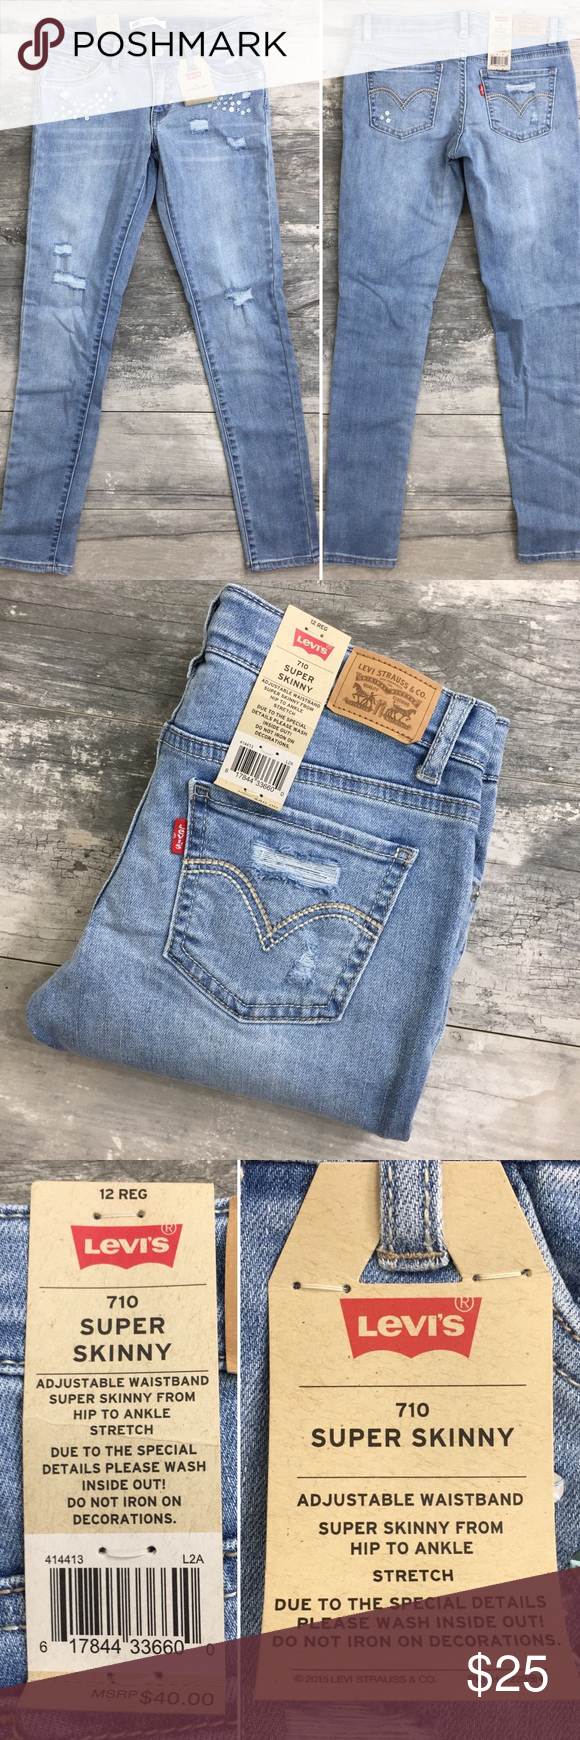 0c2ae43b25a LEVIS 710 Super Skinny Distressed Blue Jeans 12 NWT Girls Levi's brand 710 Super  Skinny distressed